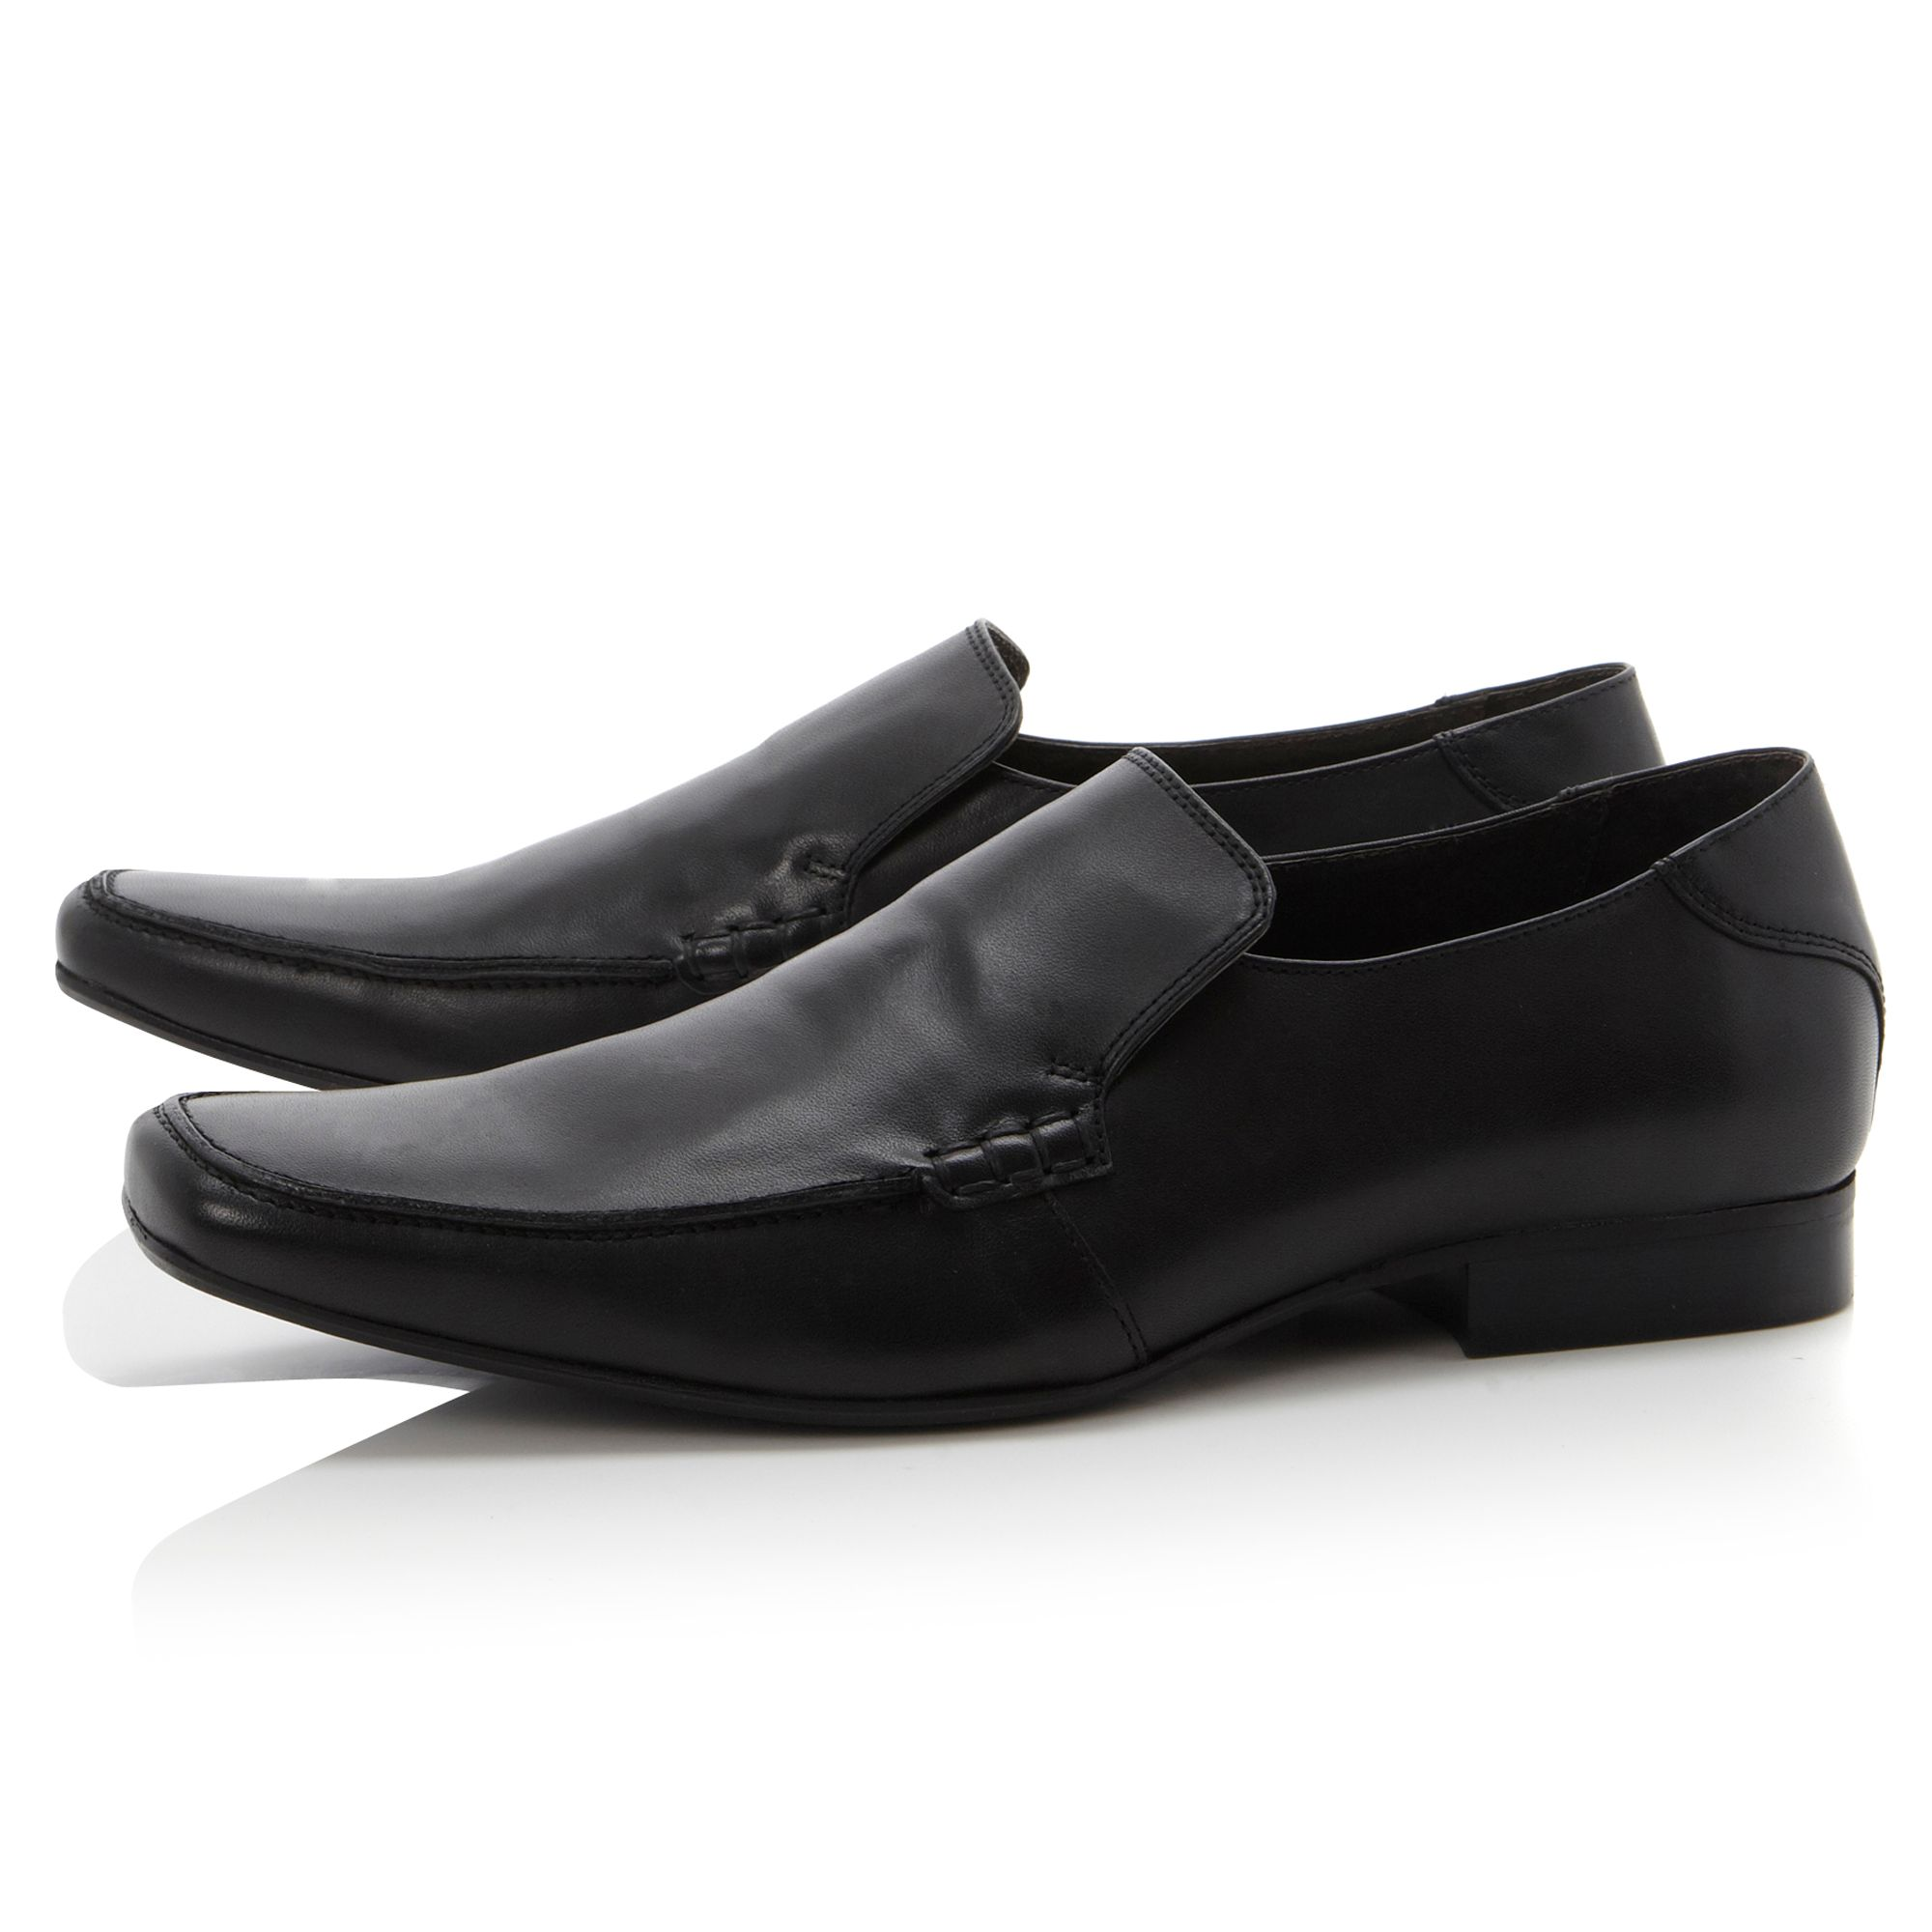 Accuracy square toe loafer